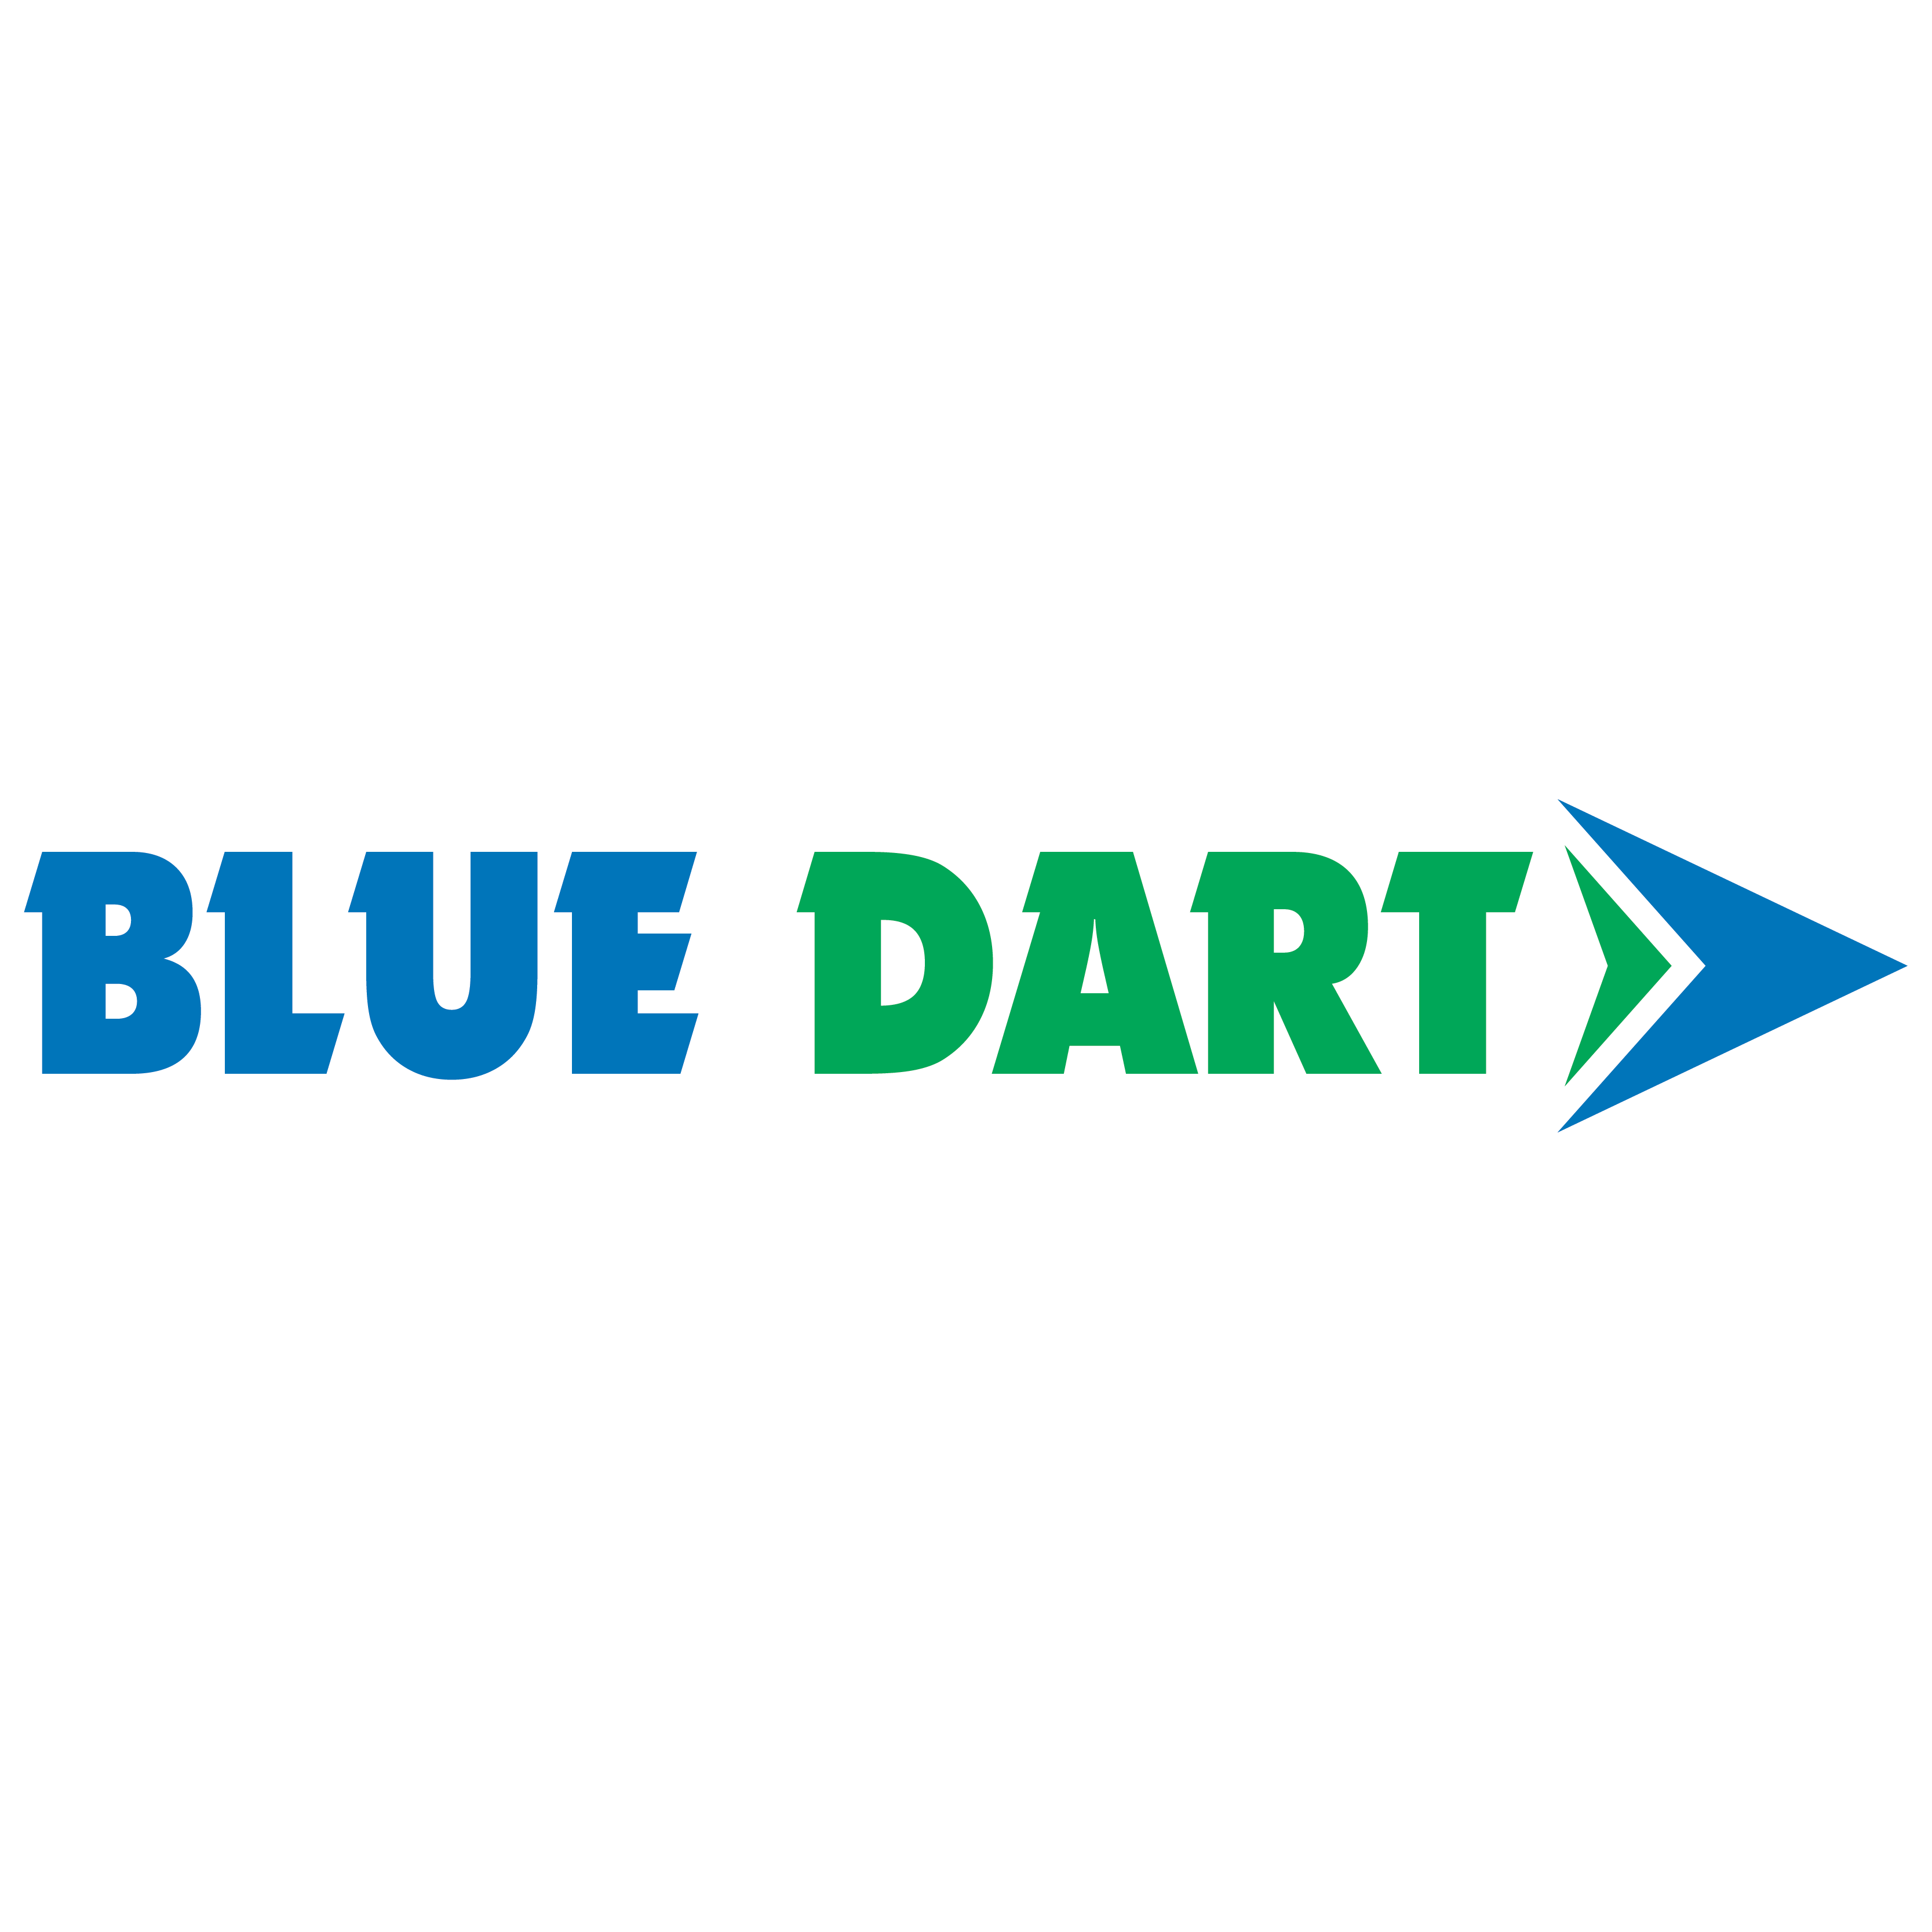 Shipedge Blue Dart Integration